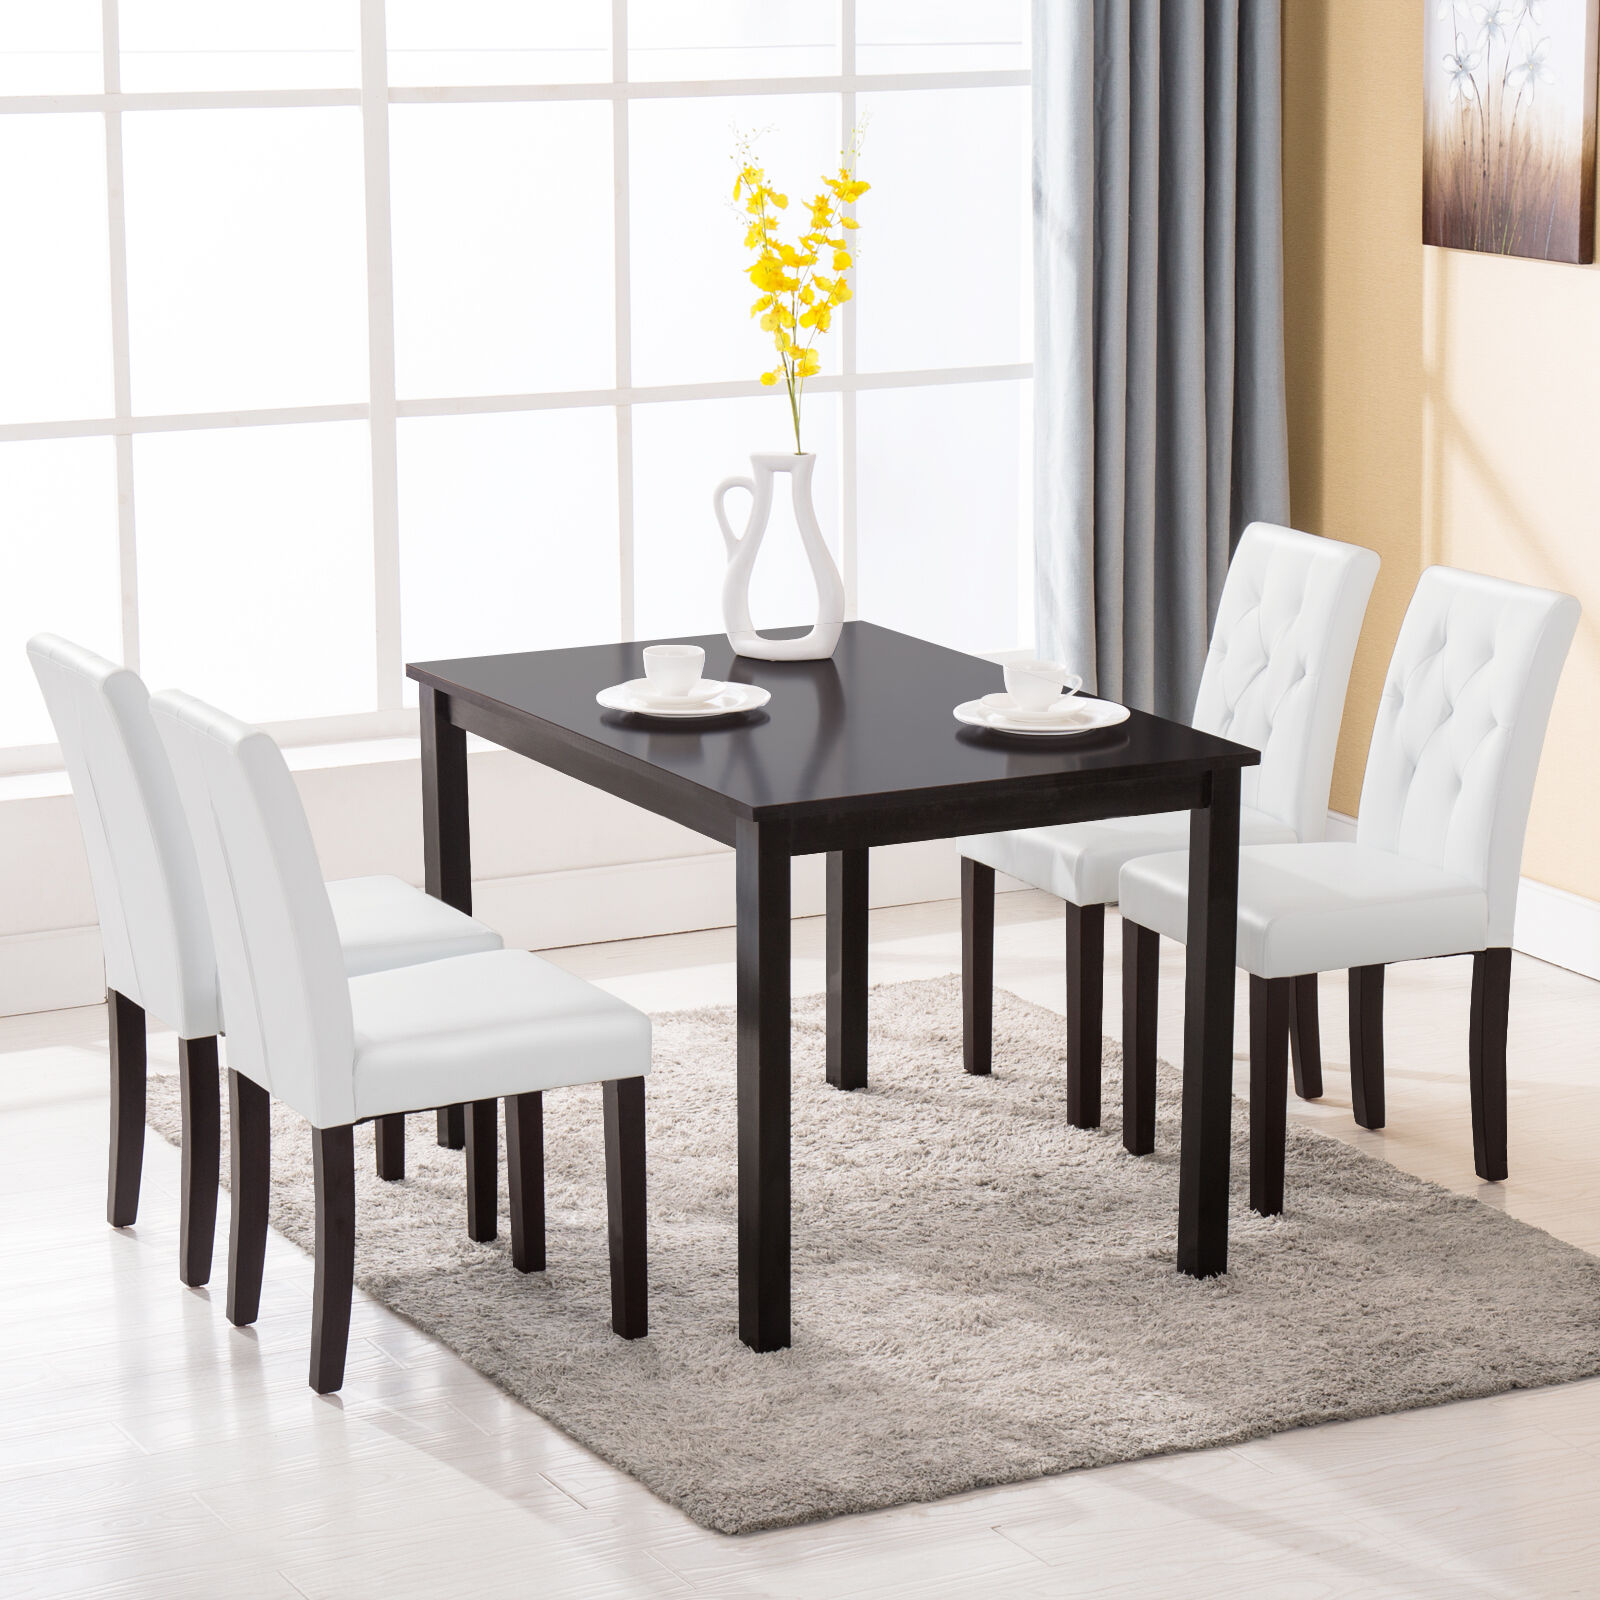 Dining Table With Chairs And Bench: 5 Piece Dining Table Set 4 Chairs Room Kitchen Dinette